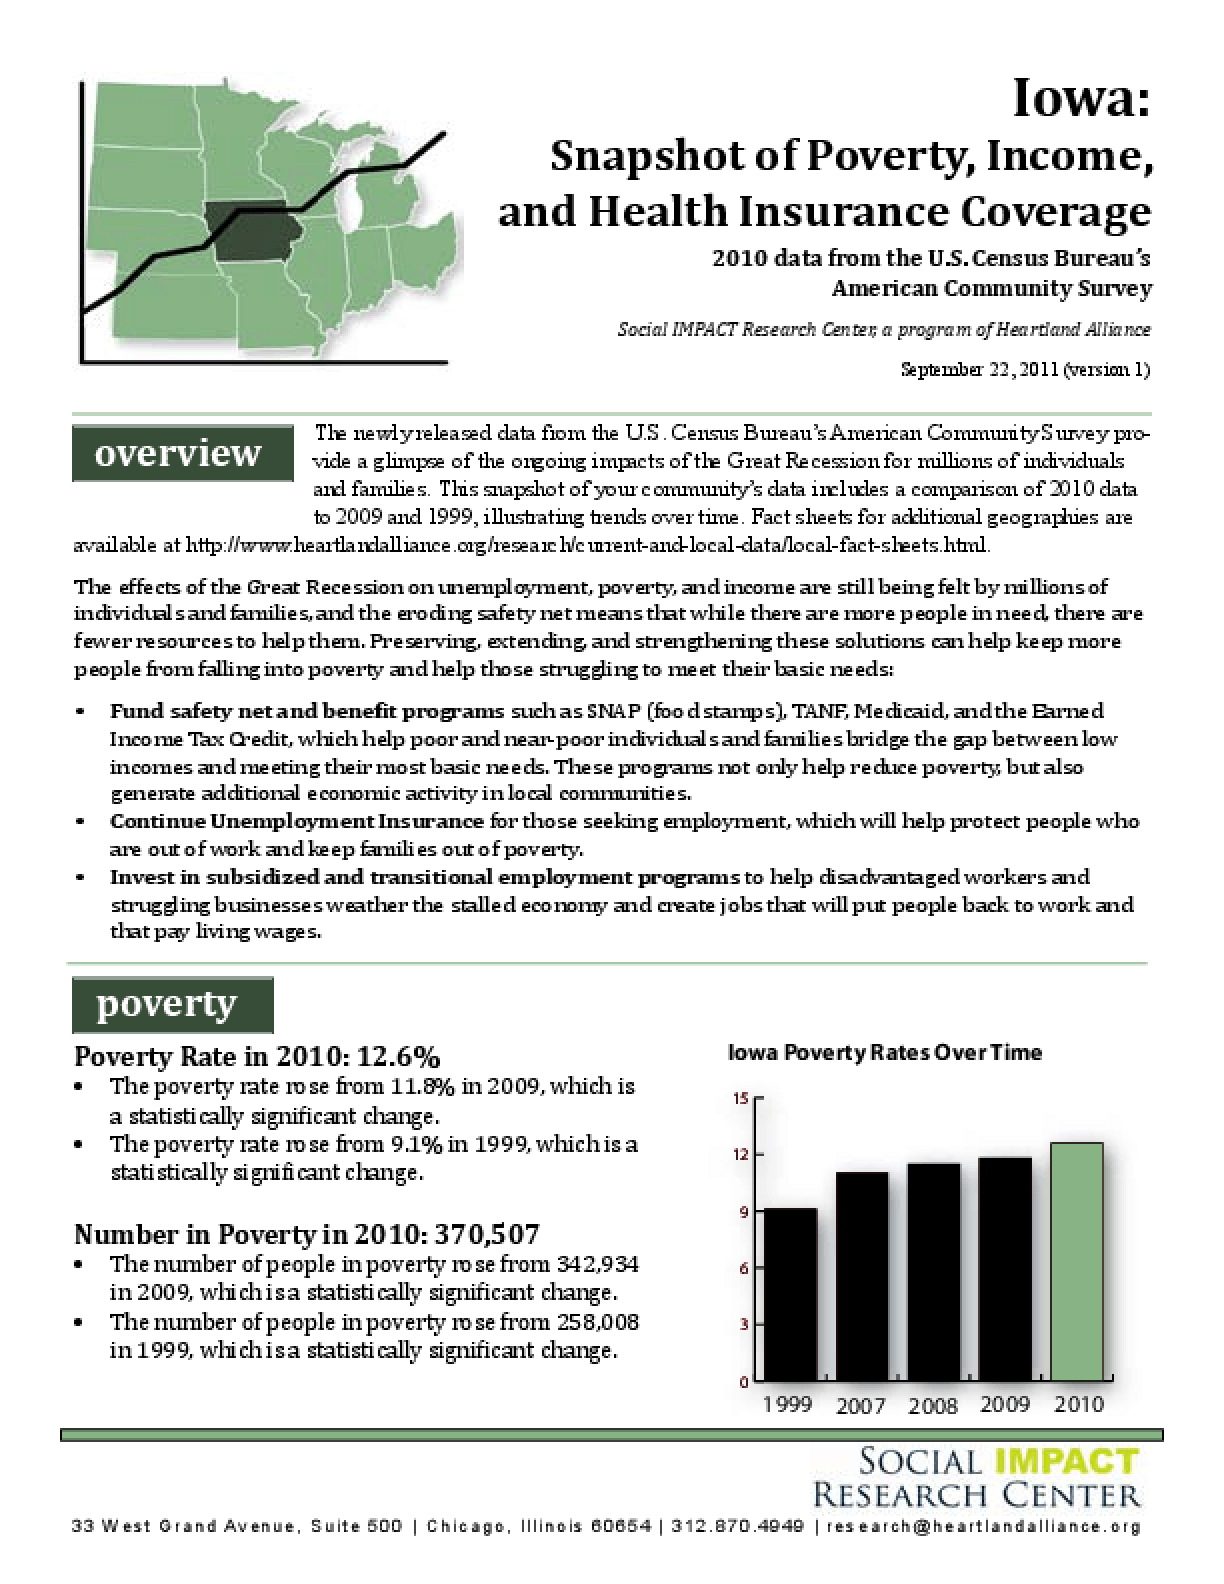 Iowa: Snapshot of Poverty, Income, and Health Insurance Coverage